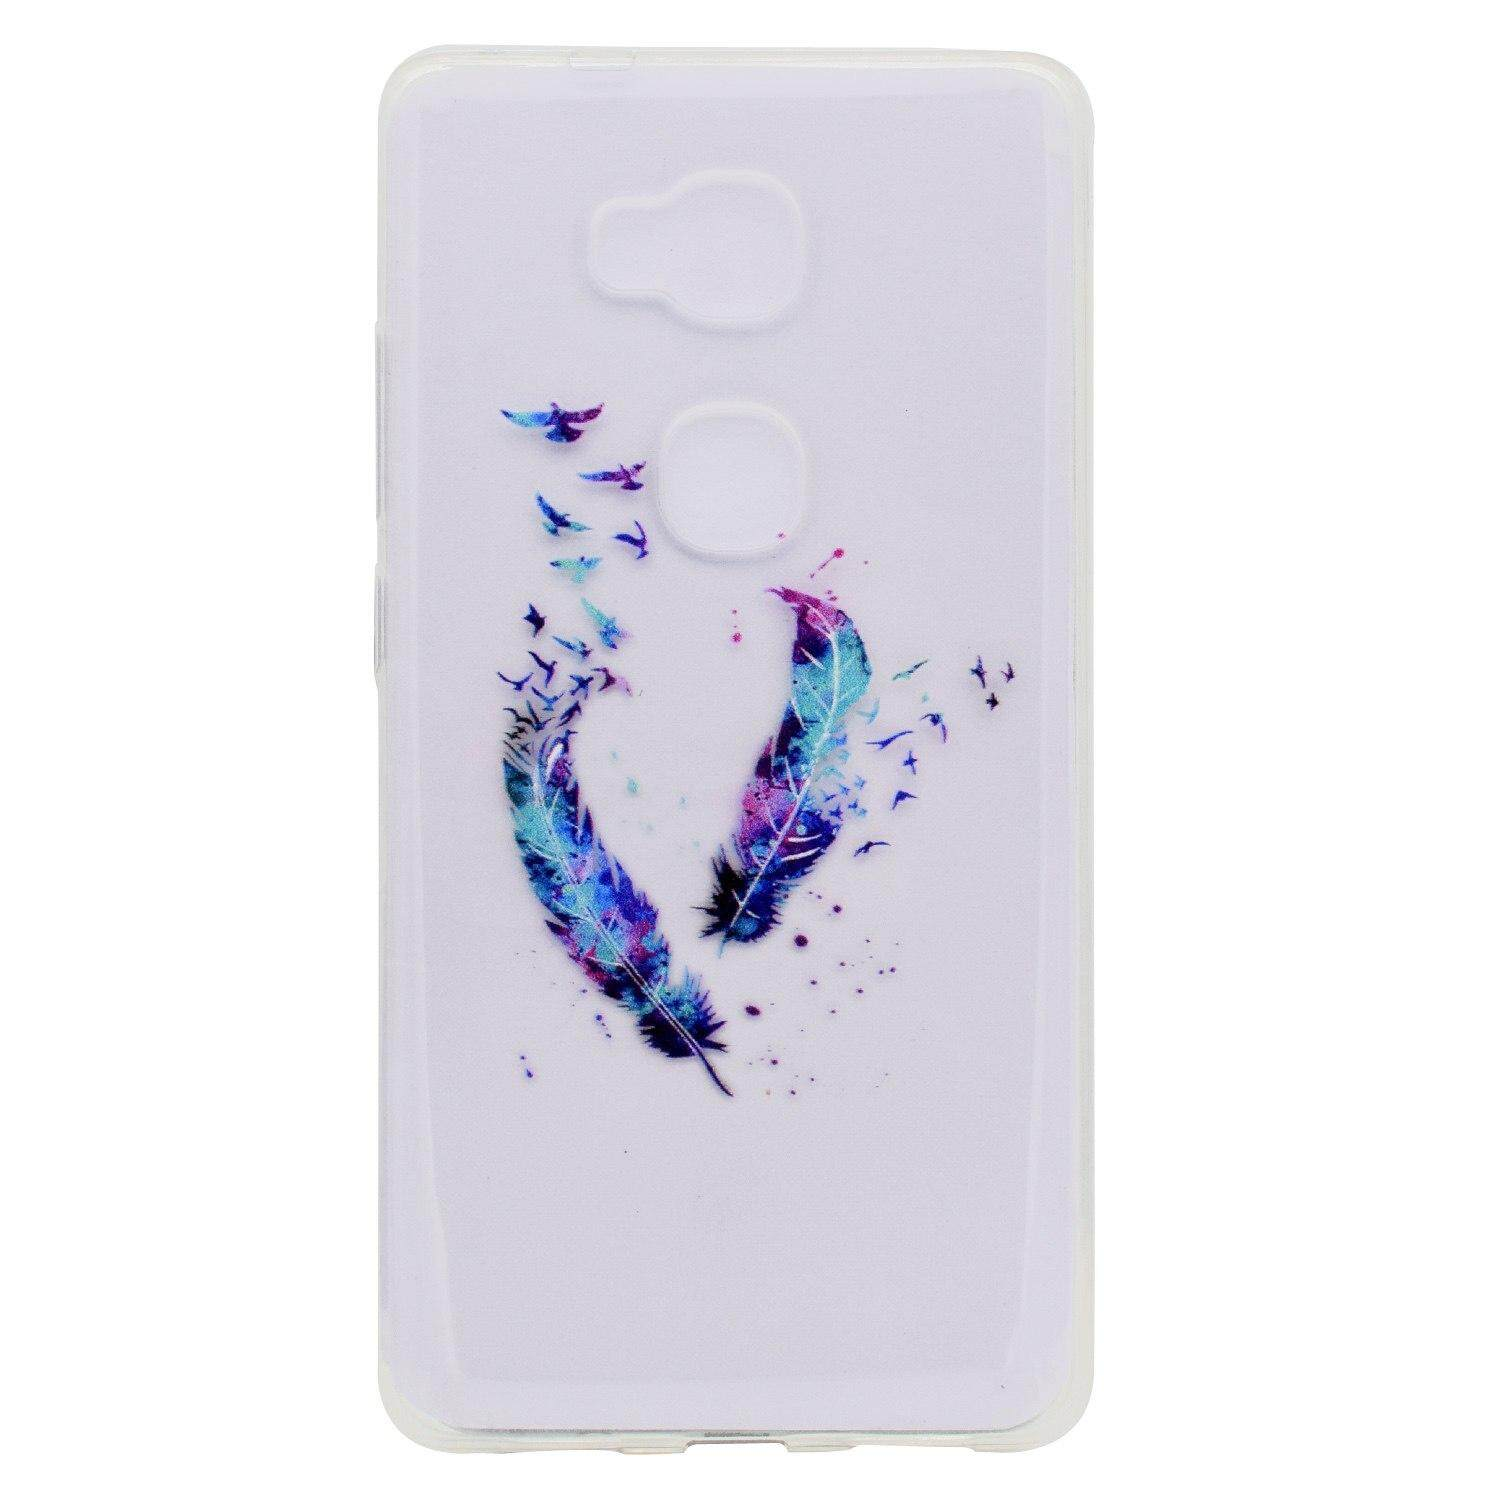 For Huawei Honor 5X KIW-L21 KIW-L22 Case Shell Cover Painted Soft TPU  Silicone Protector Case for Huawei Honor5X KIW-L21 KIW-L22 Cases